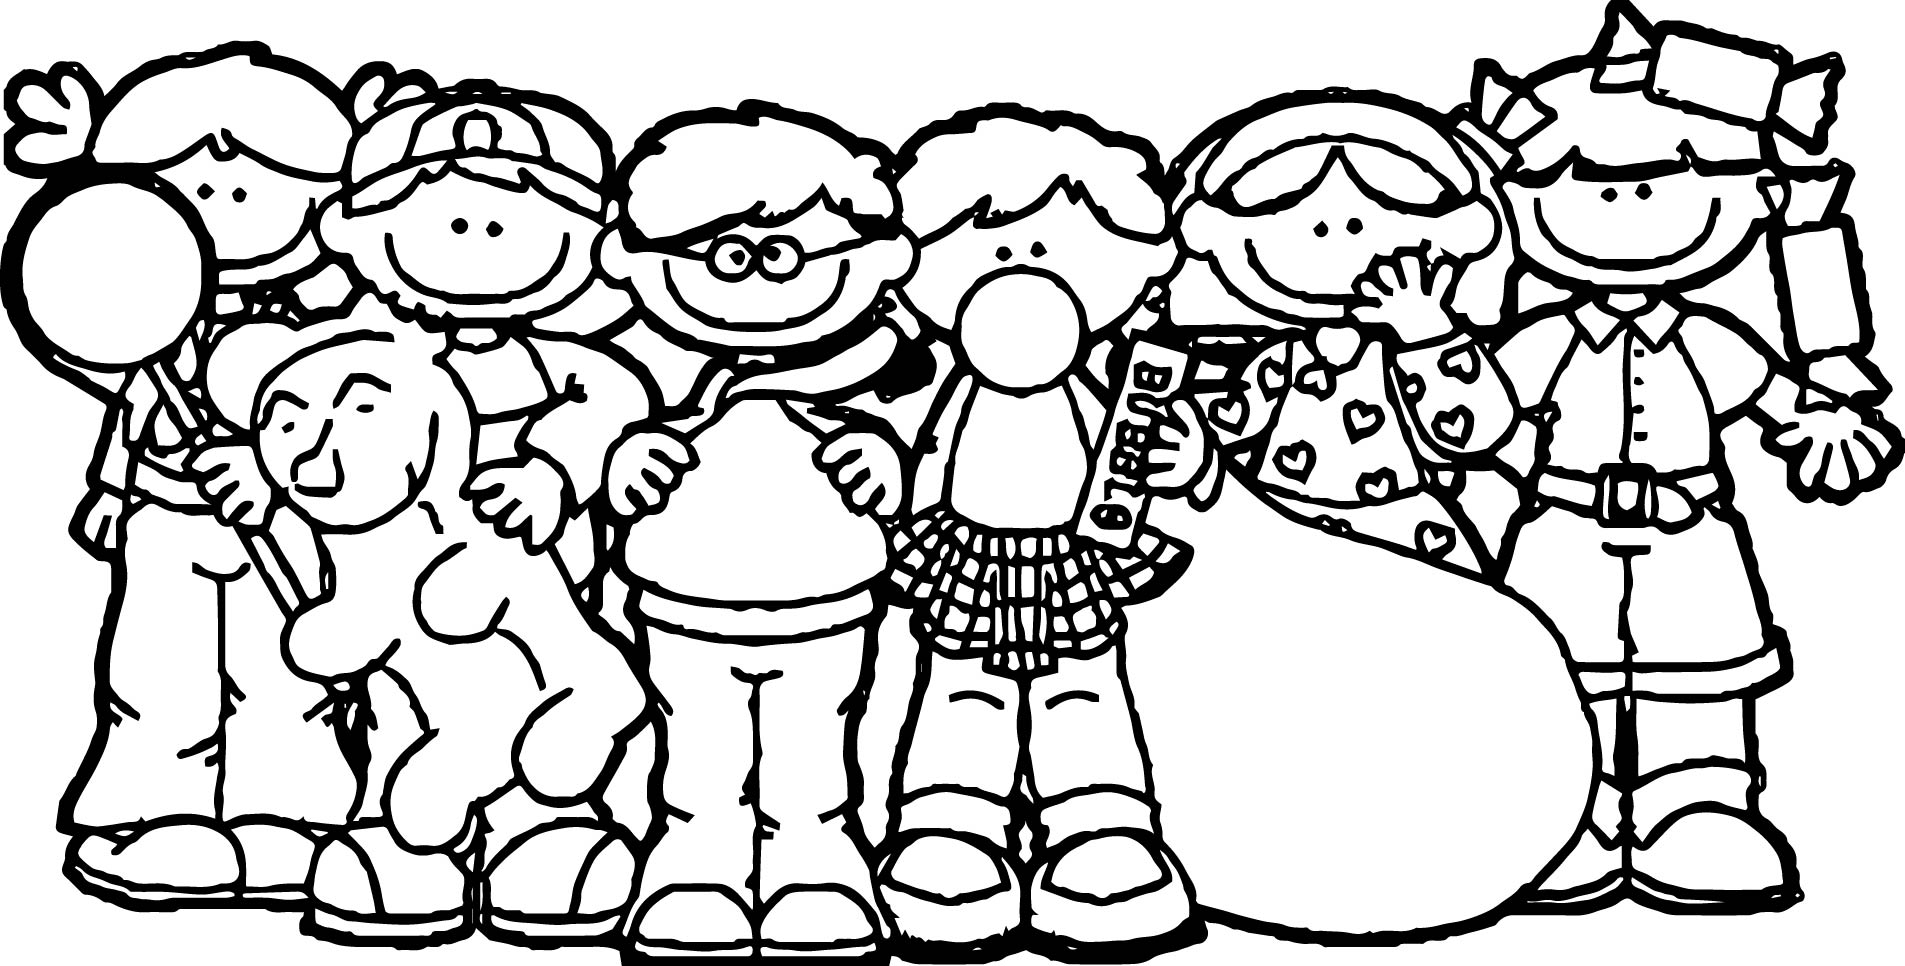 coloring pages 3rd grade 3rd grade coloring pages free download on clipartmag pages coloring 3rd grade